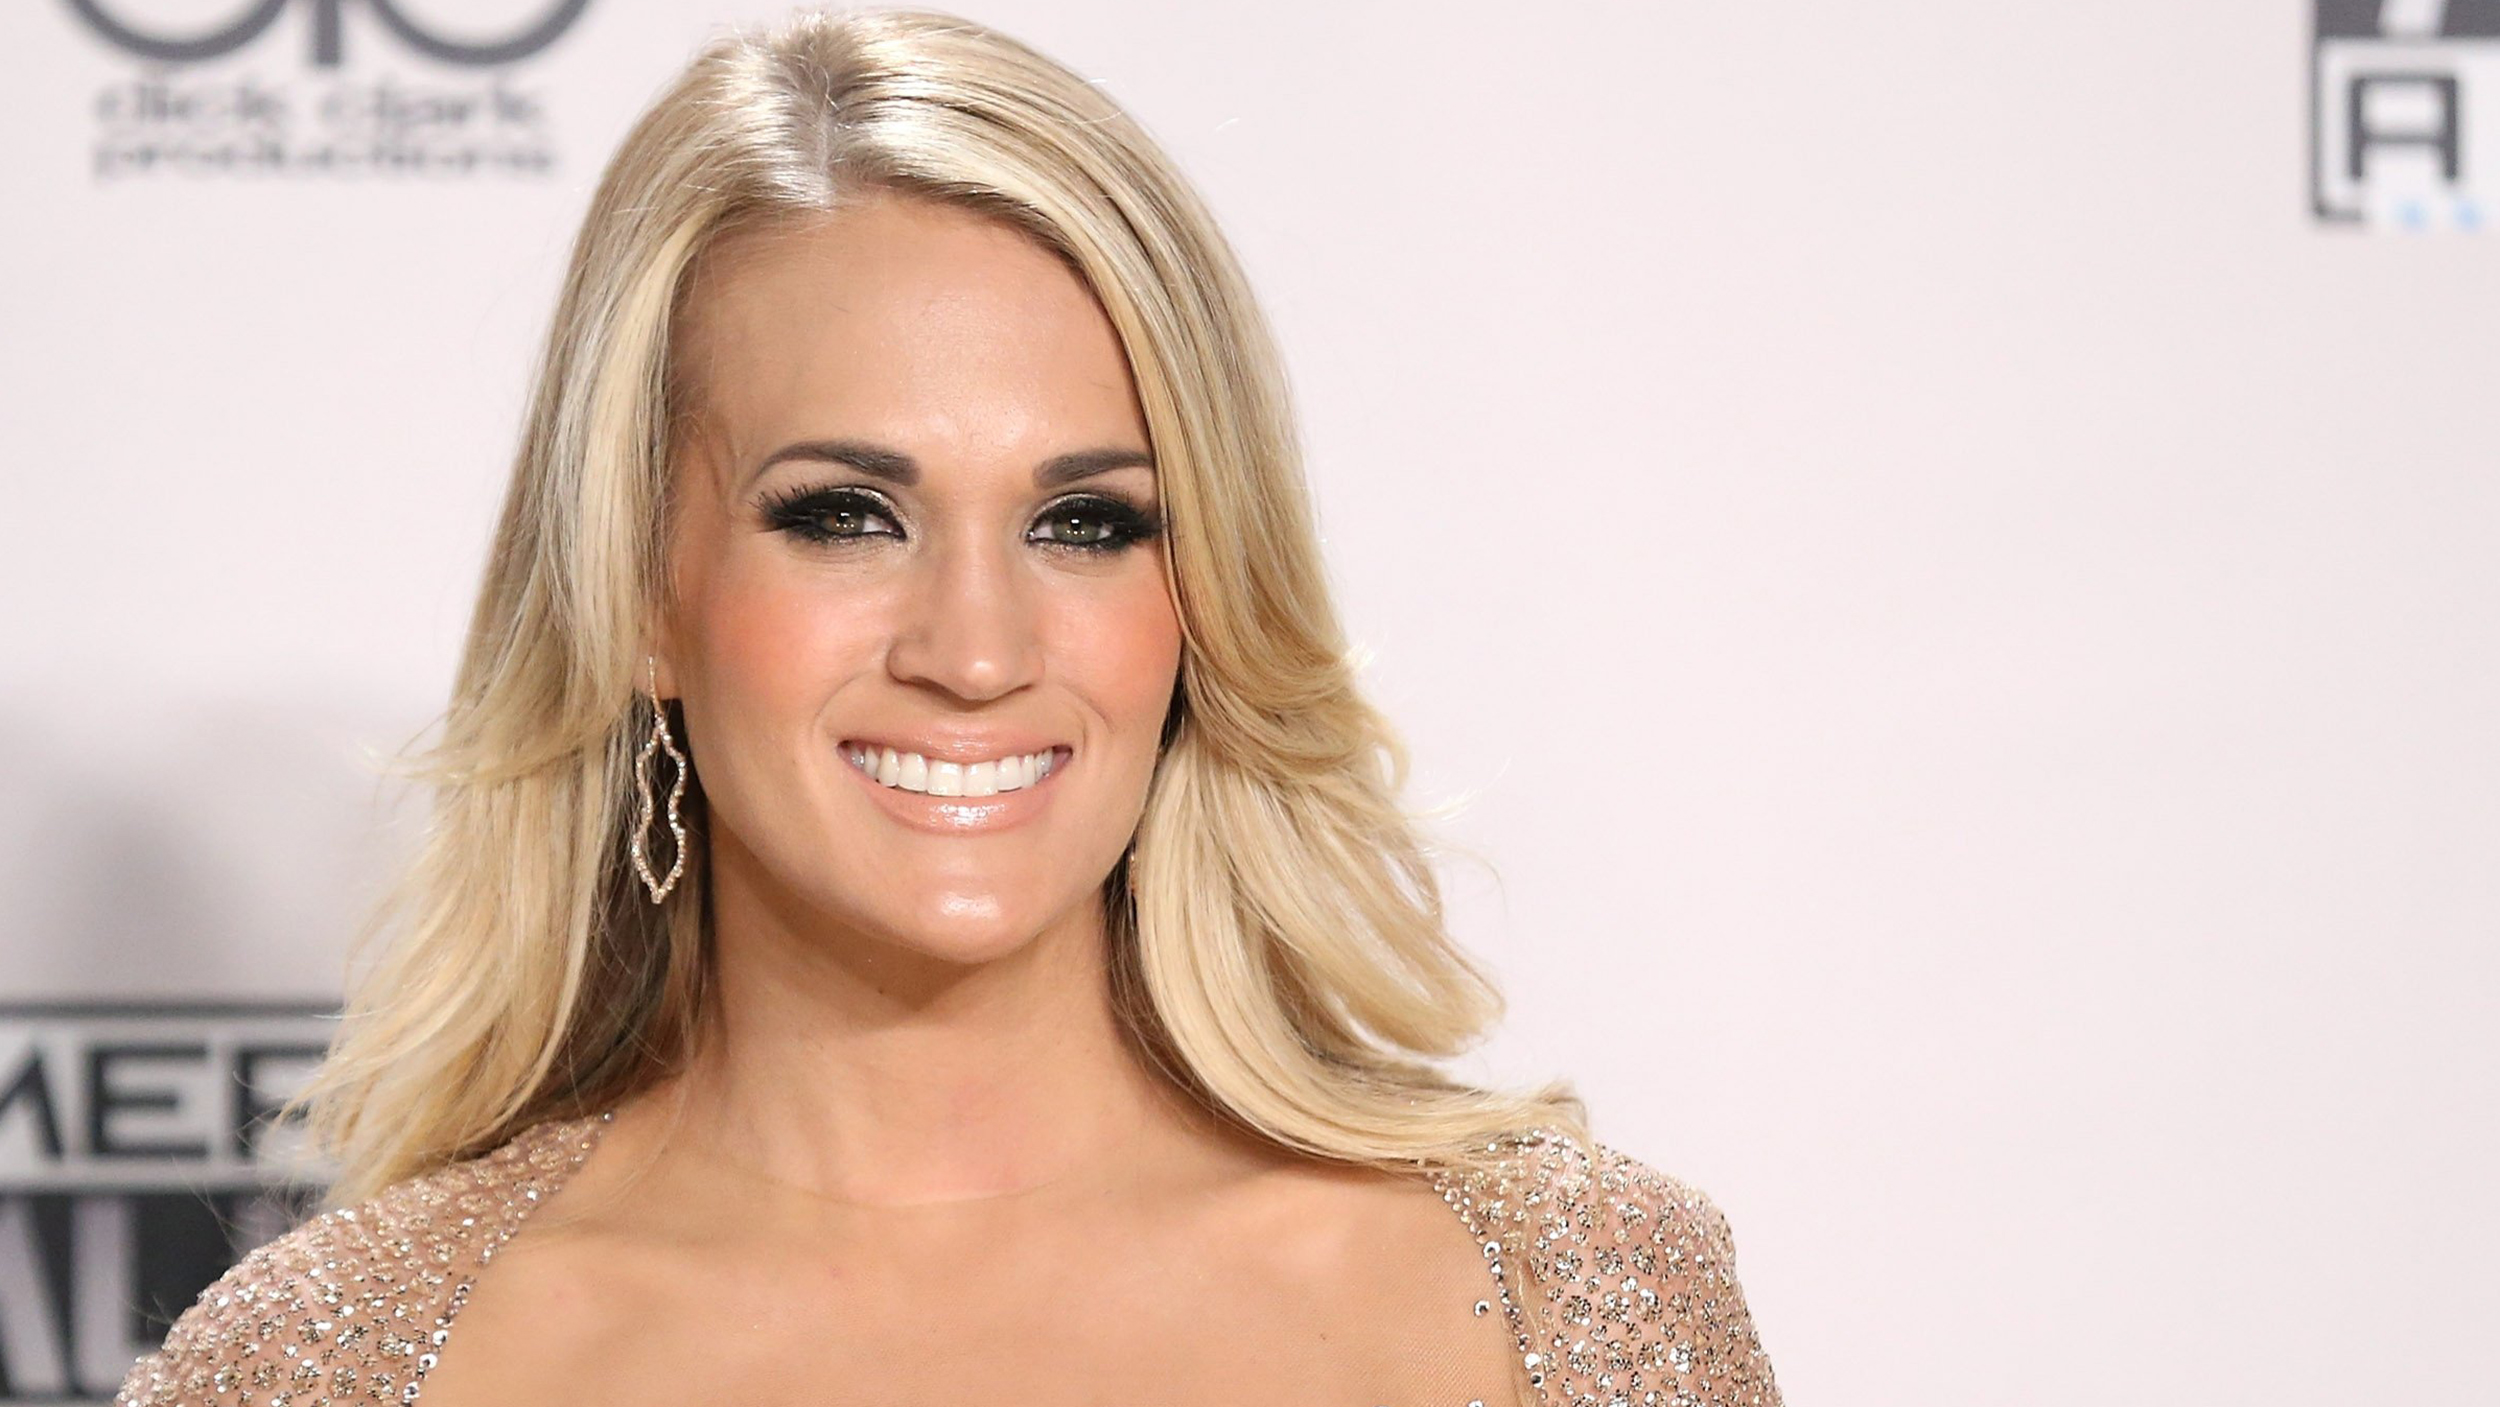 Carrie Underwood Goes Makeup Free Workout Selfie See Photo T102224